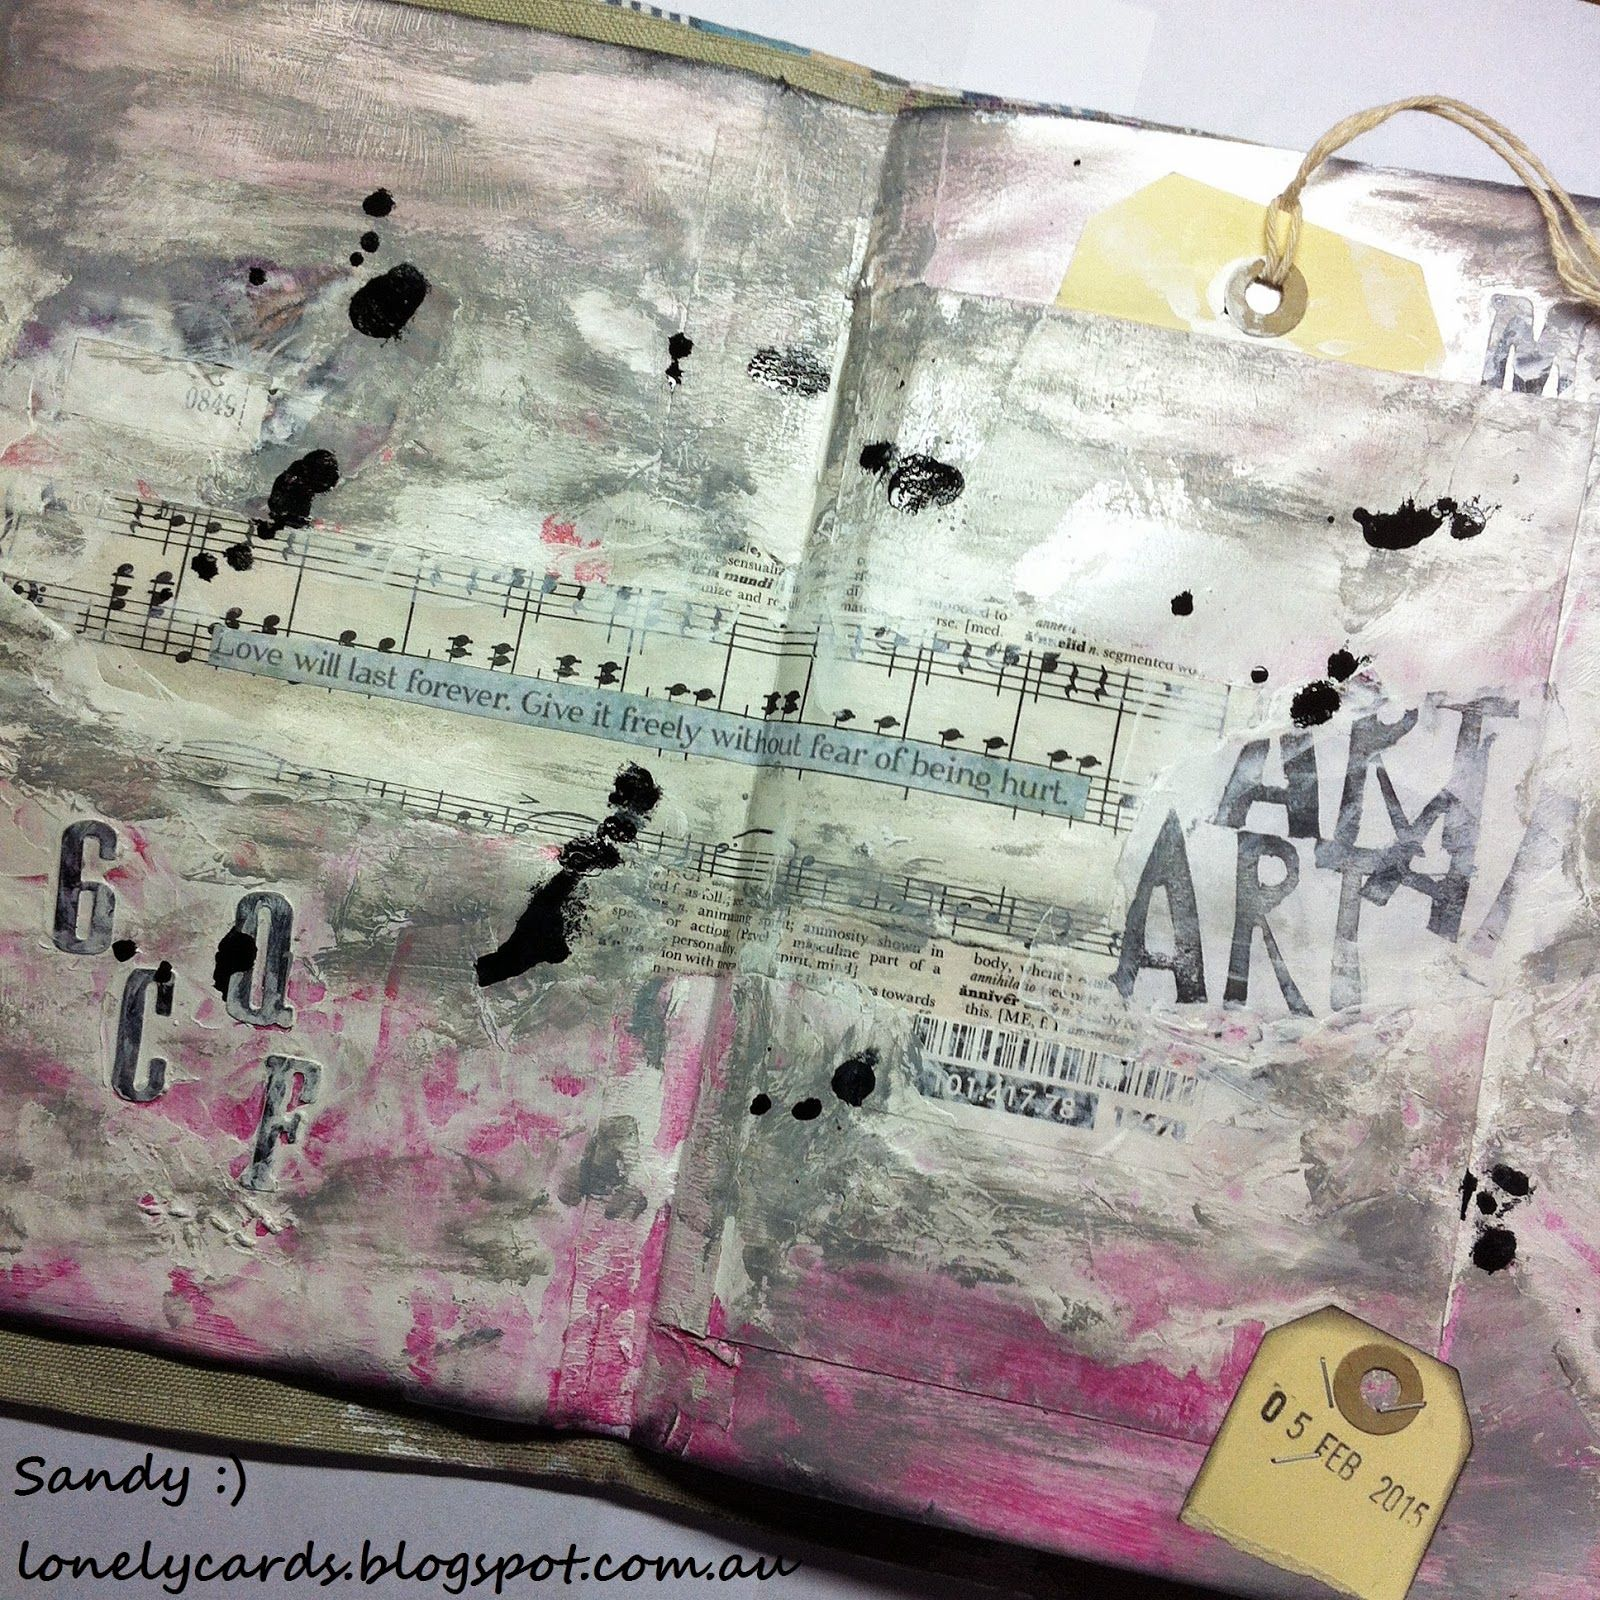 Lonely Cards and other arty crafty things.: Inspiration Journal...